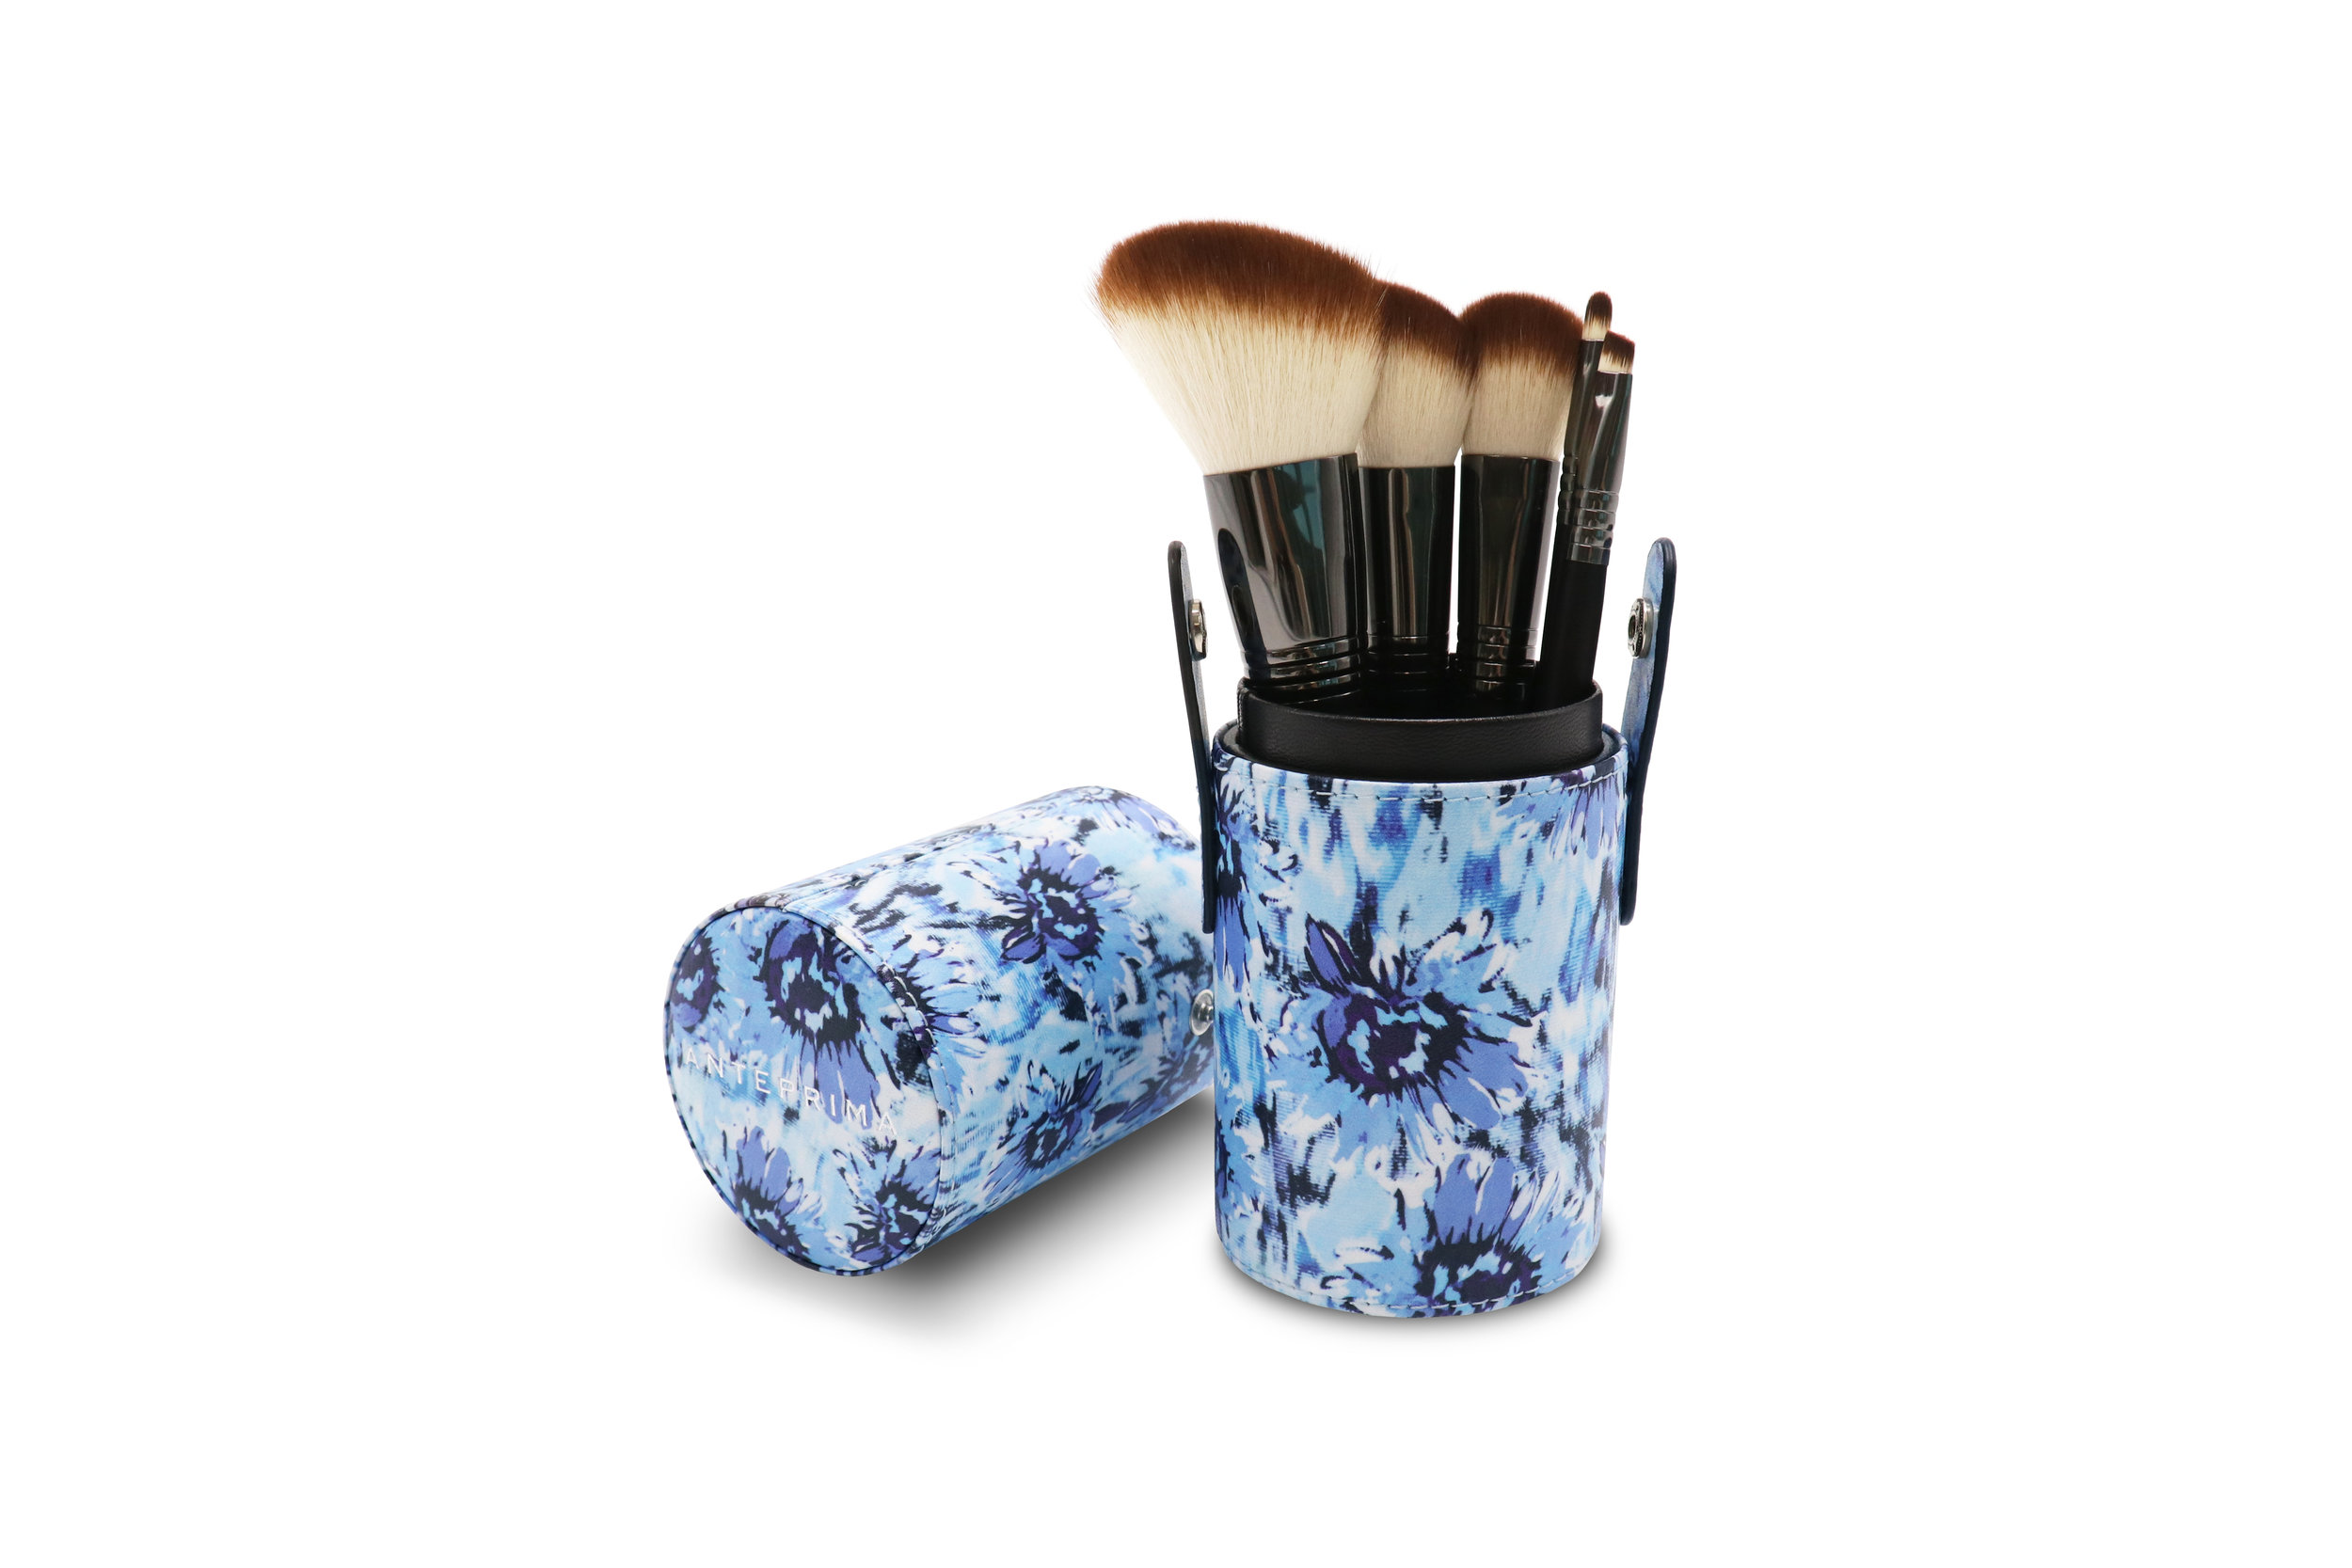 SS19_APM_VIP Gift_Cosmetic Brush Set_Official Image 02.jpg